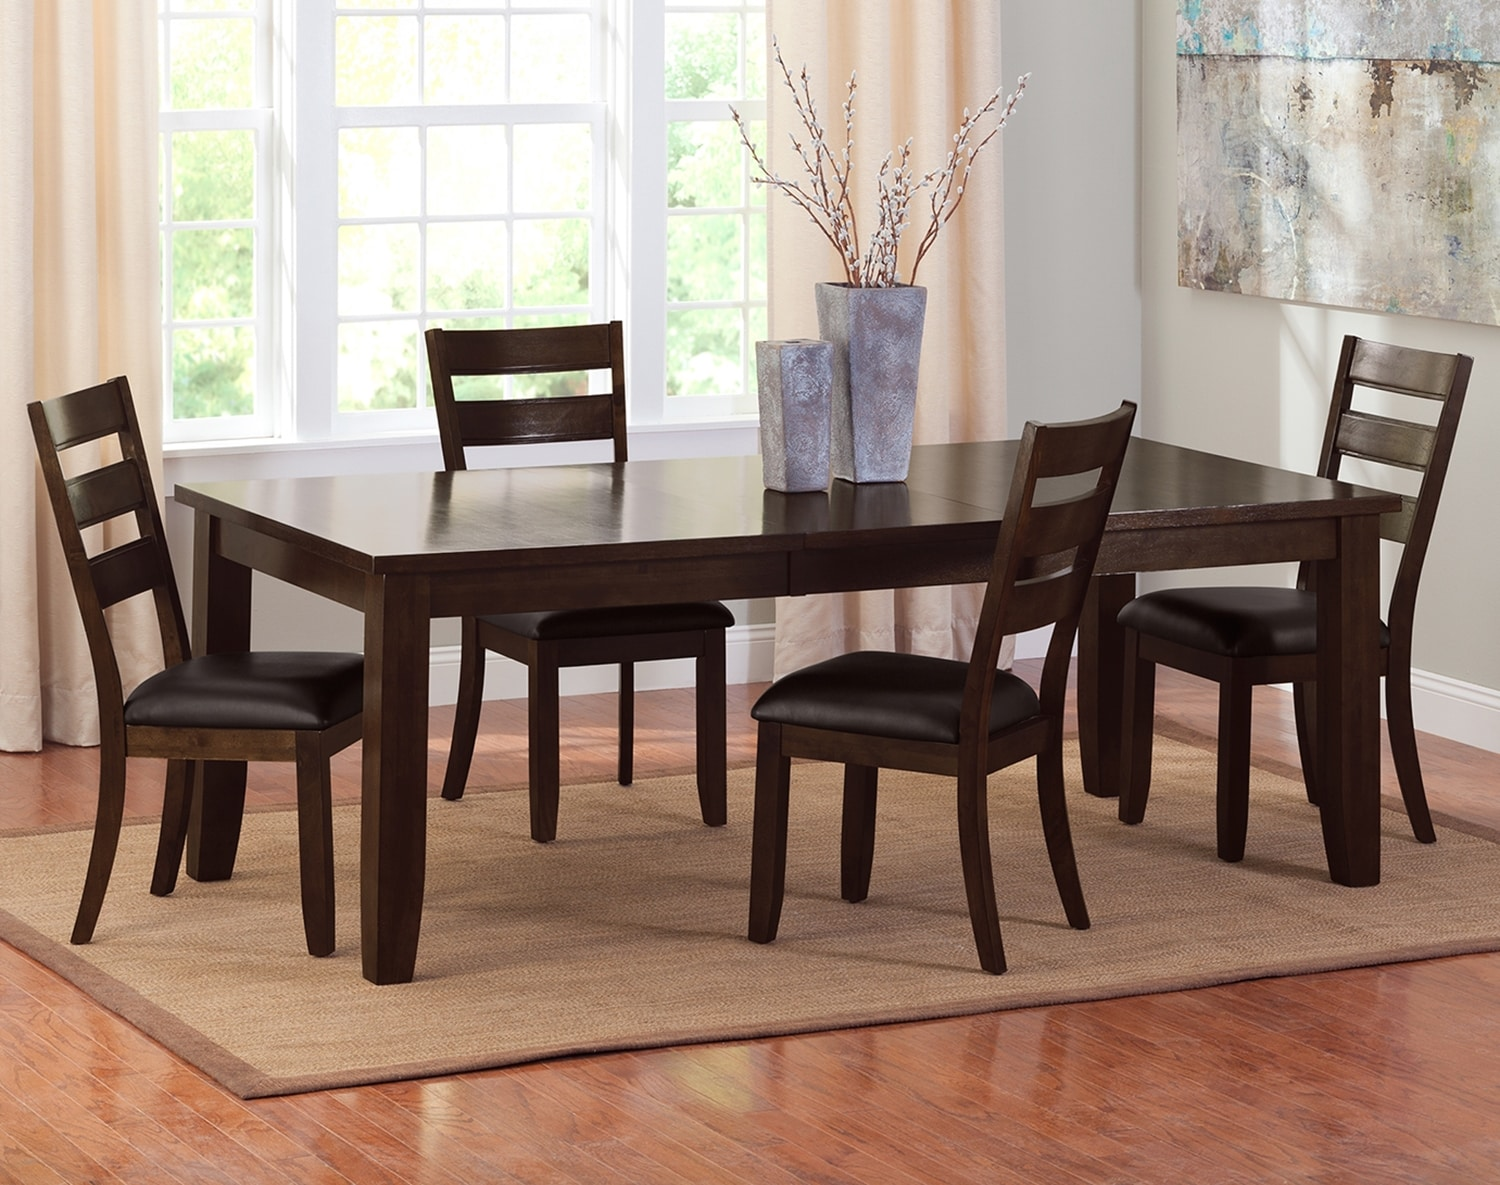 The Abaco Collection - Brown